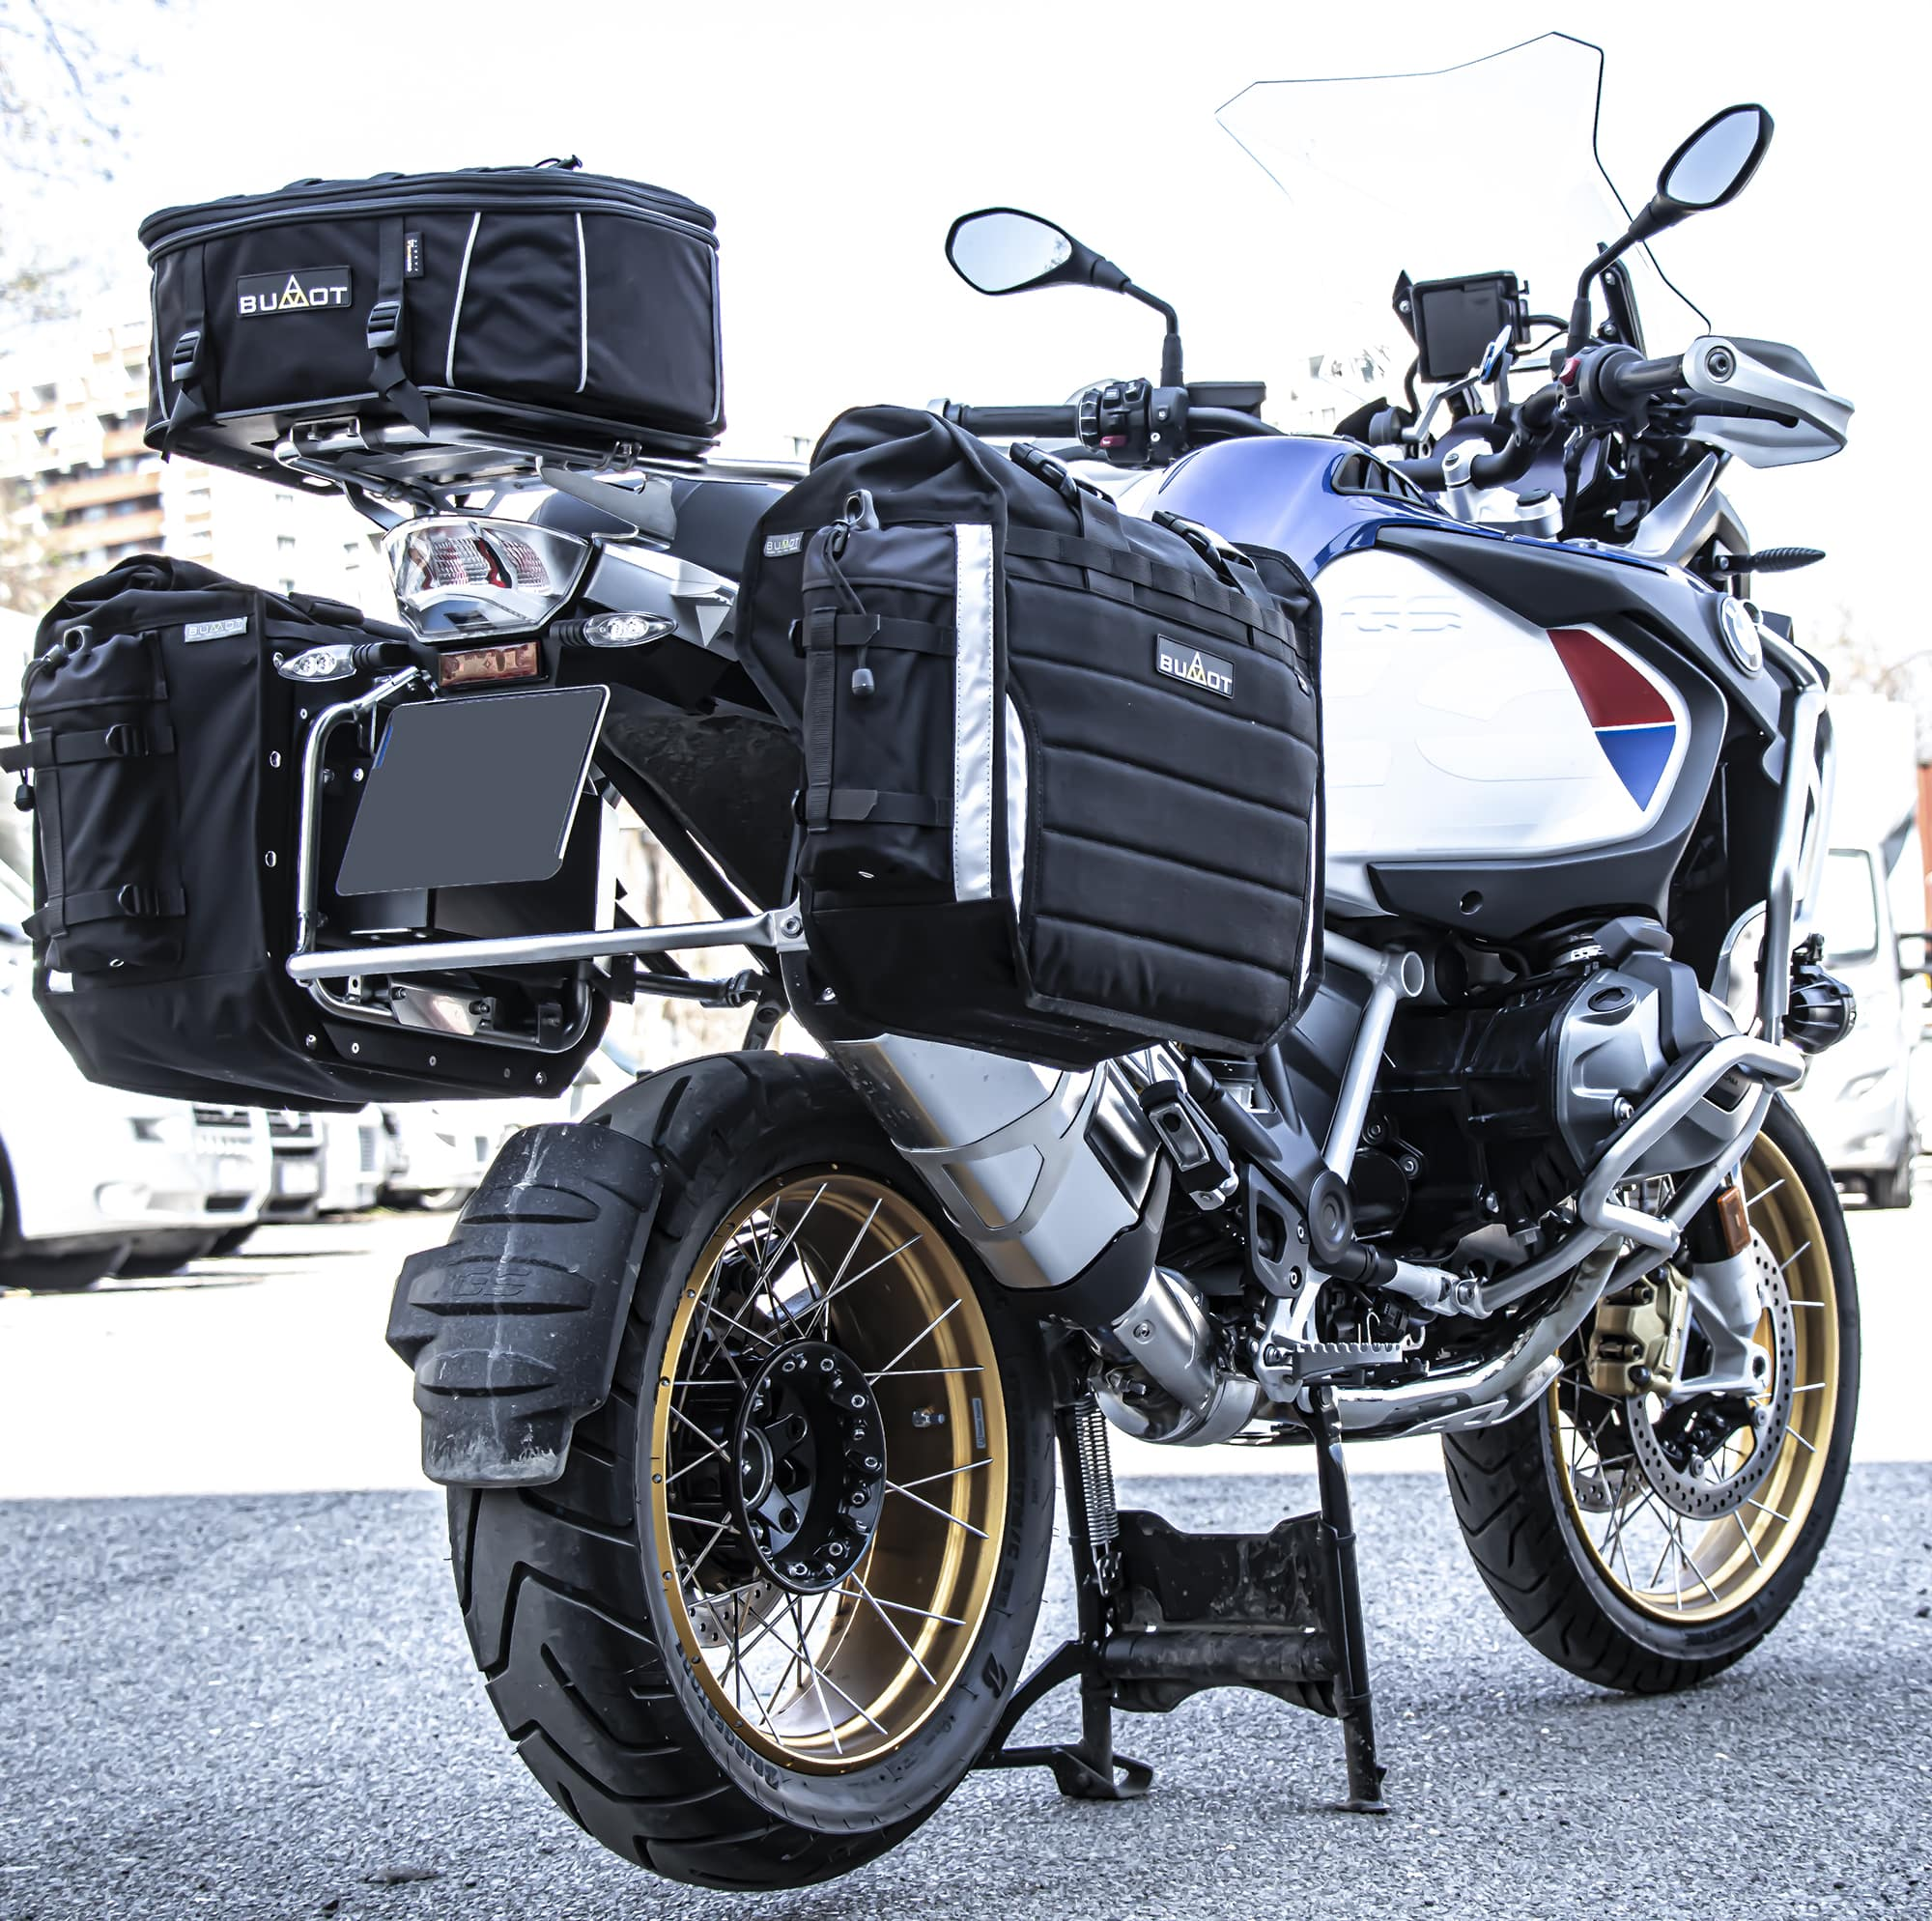 Xtremada soft panniers for Original BMW racks  of 850/1200/1250 GSA